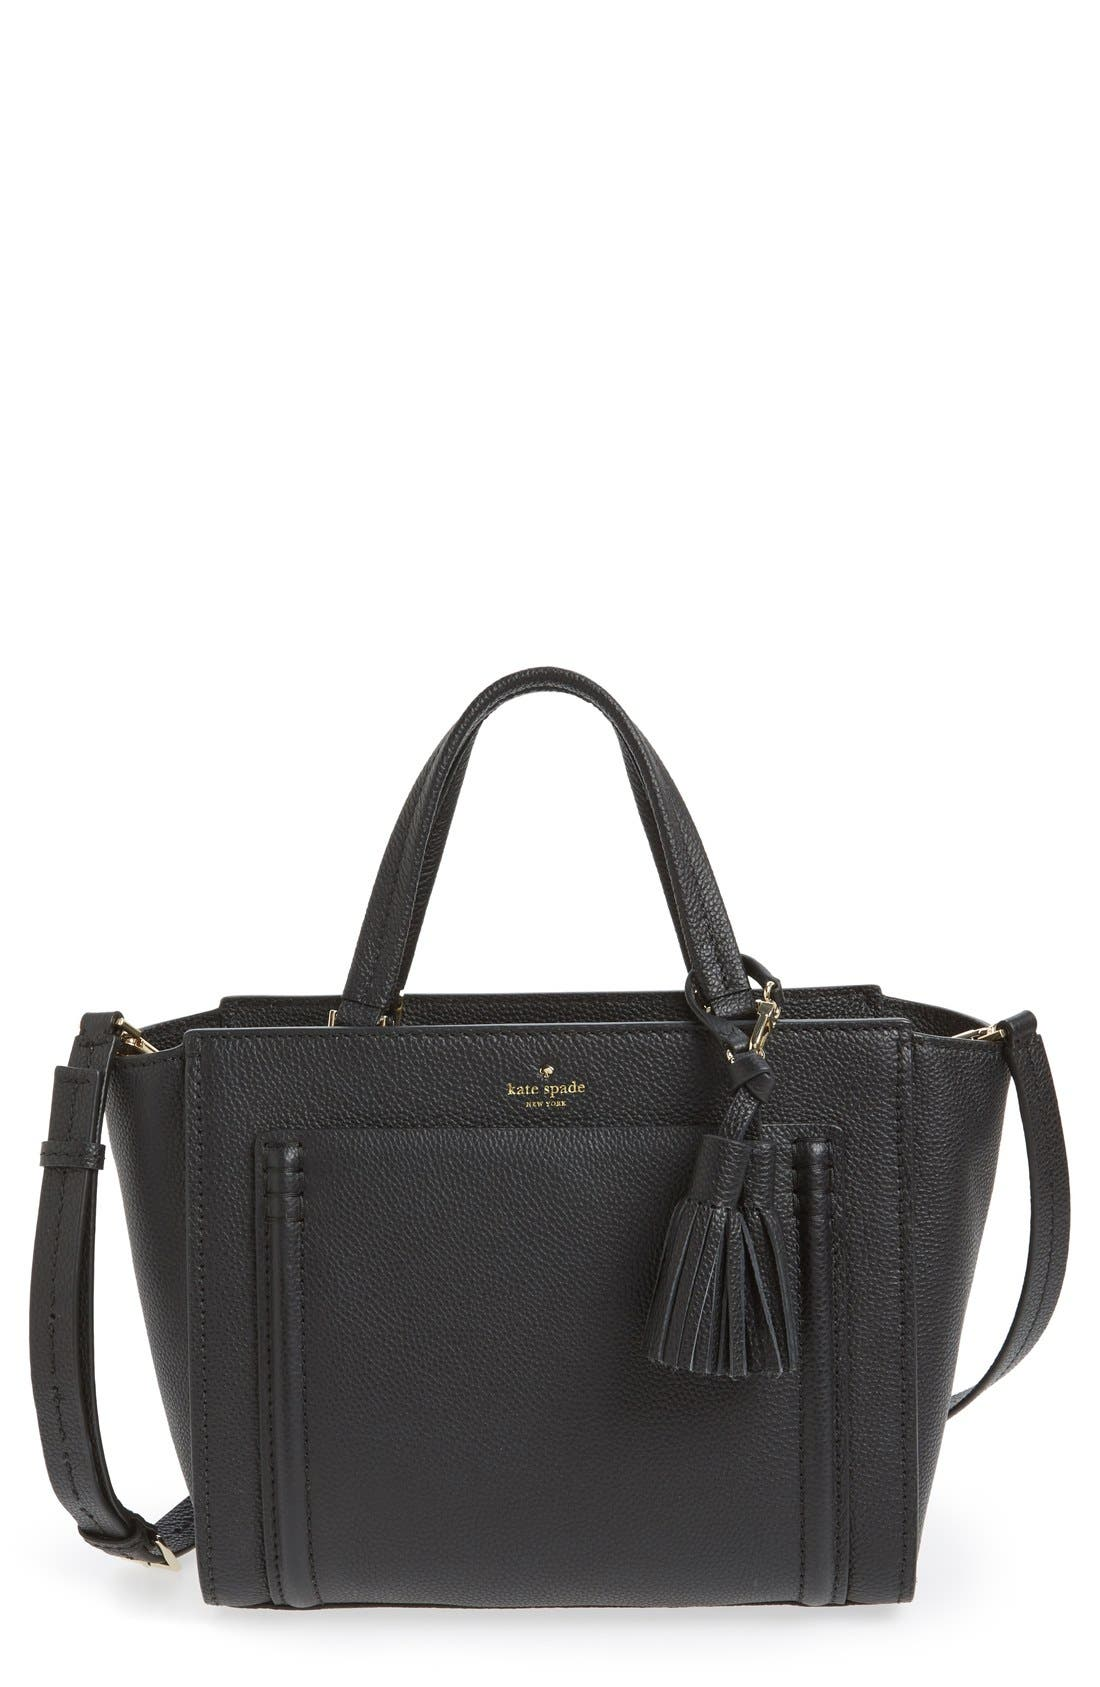 Main Image - kate spade new york 'orchard street - dillon' tassel leather satchel